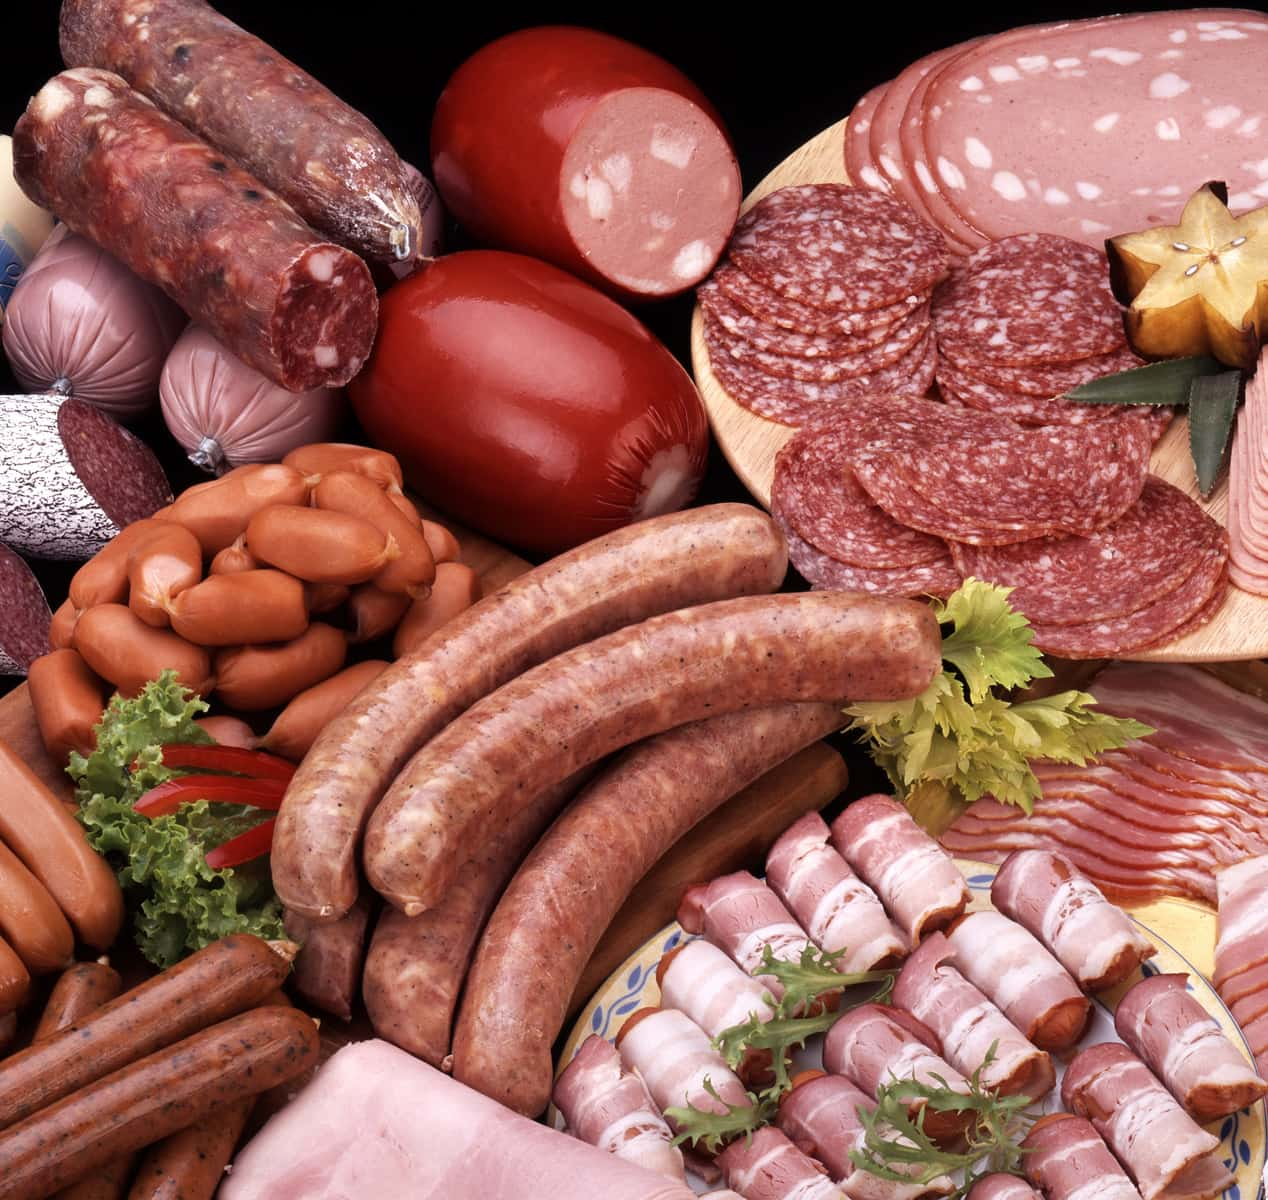 Processed Meat Linked to Cardiovascular Disease and Death